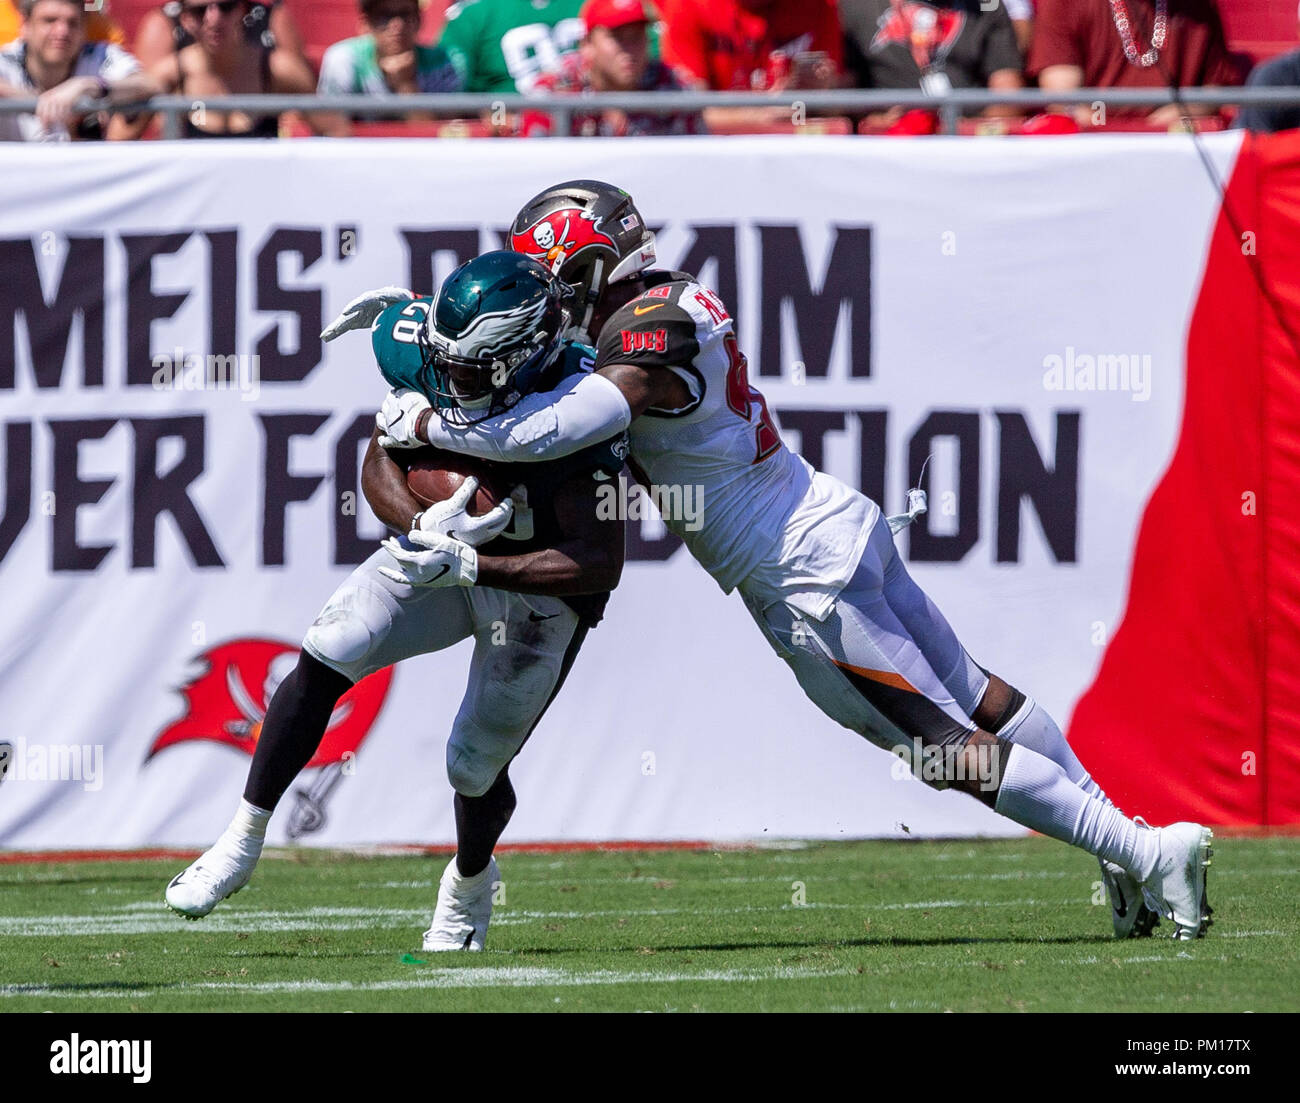 Tampa, Florida, USA. 16th Sep, 2018. Tampa Bay Buccaneers outside linebacker Kwon Alexander (58) tackles .Philadelphia Eagles running back Wendell Smallwood (28) in the 2nd half during the game between the Philadelphia Eagles and the Tampa Bay Buccaneers at Raymond James Stadium in Tampa, Florida. Del Mecum/CSM/Alamy Live News - Stock Image